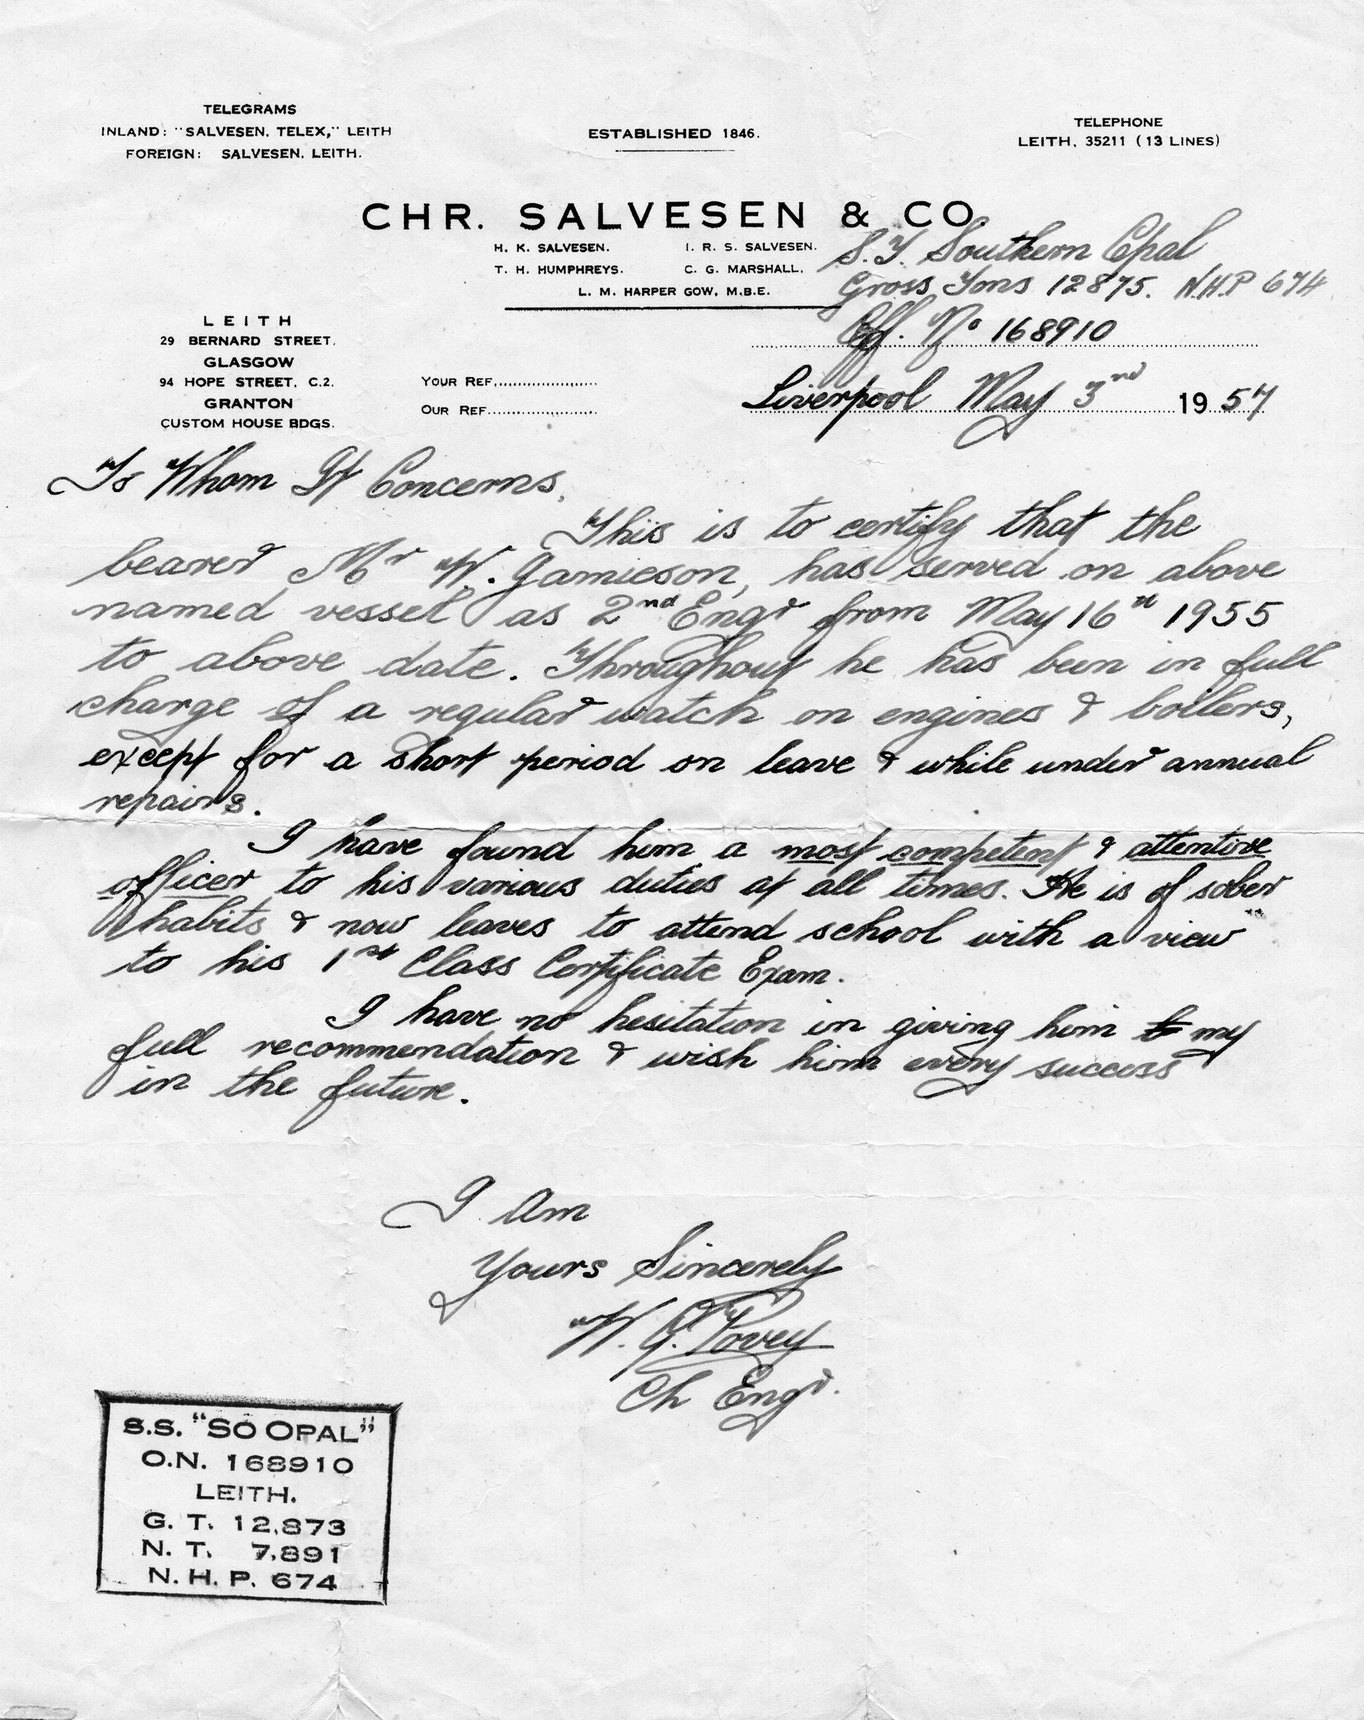 Reference Of Employment Letter For Engineer At Christian Salvesen 1957